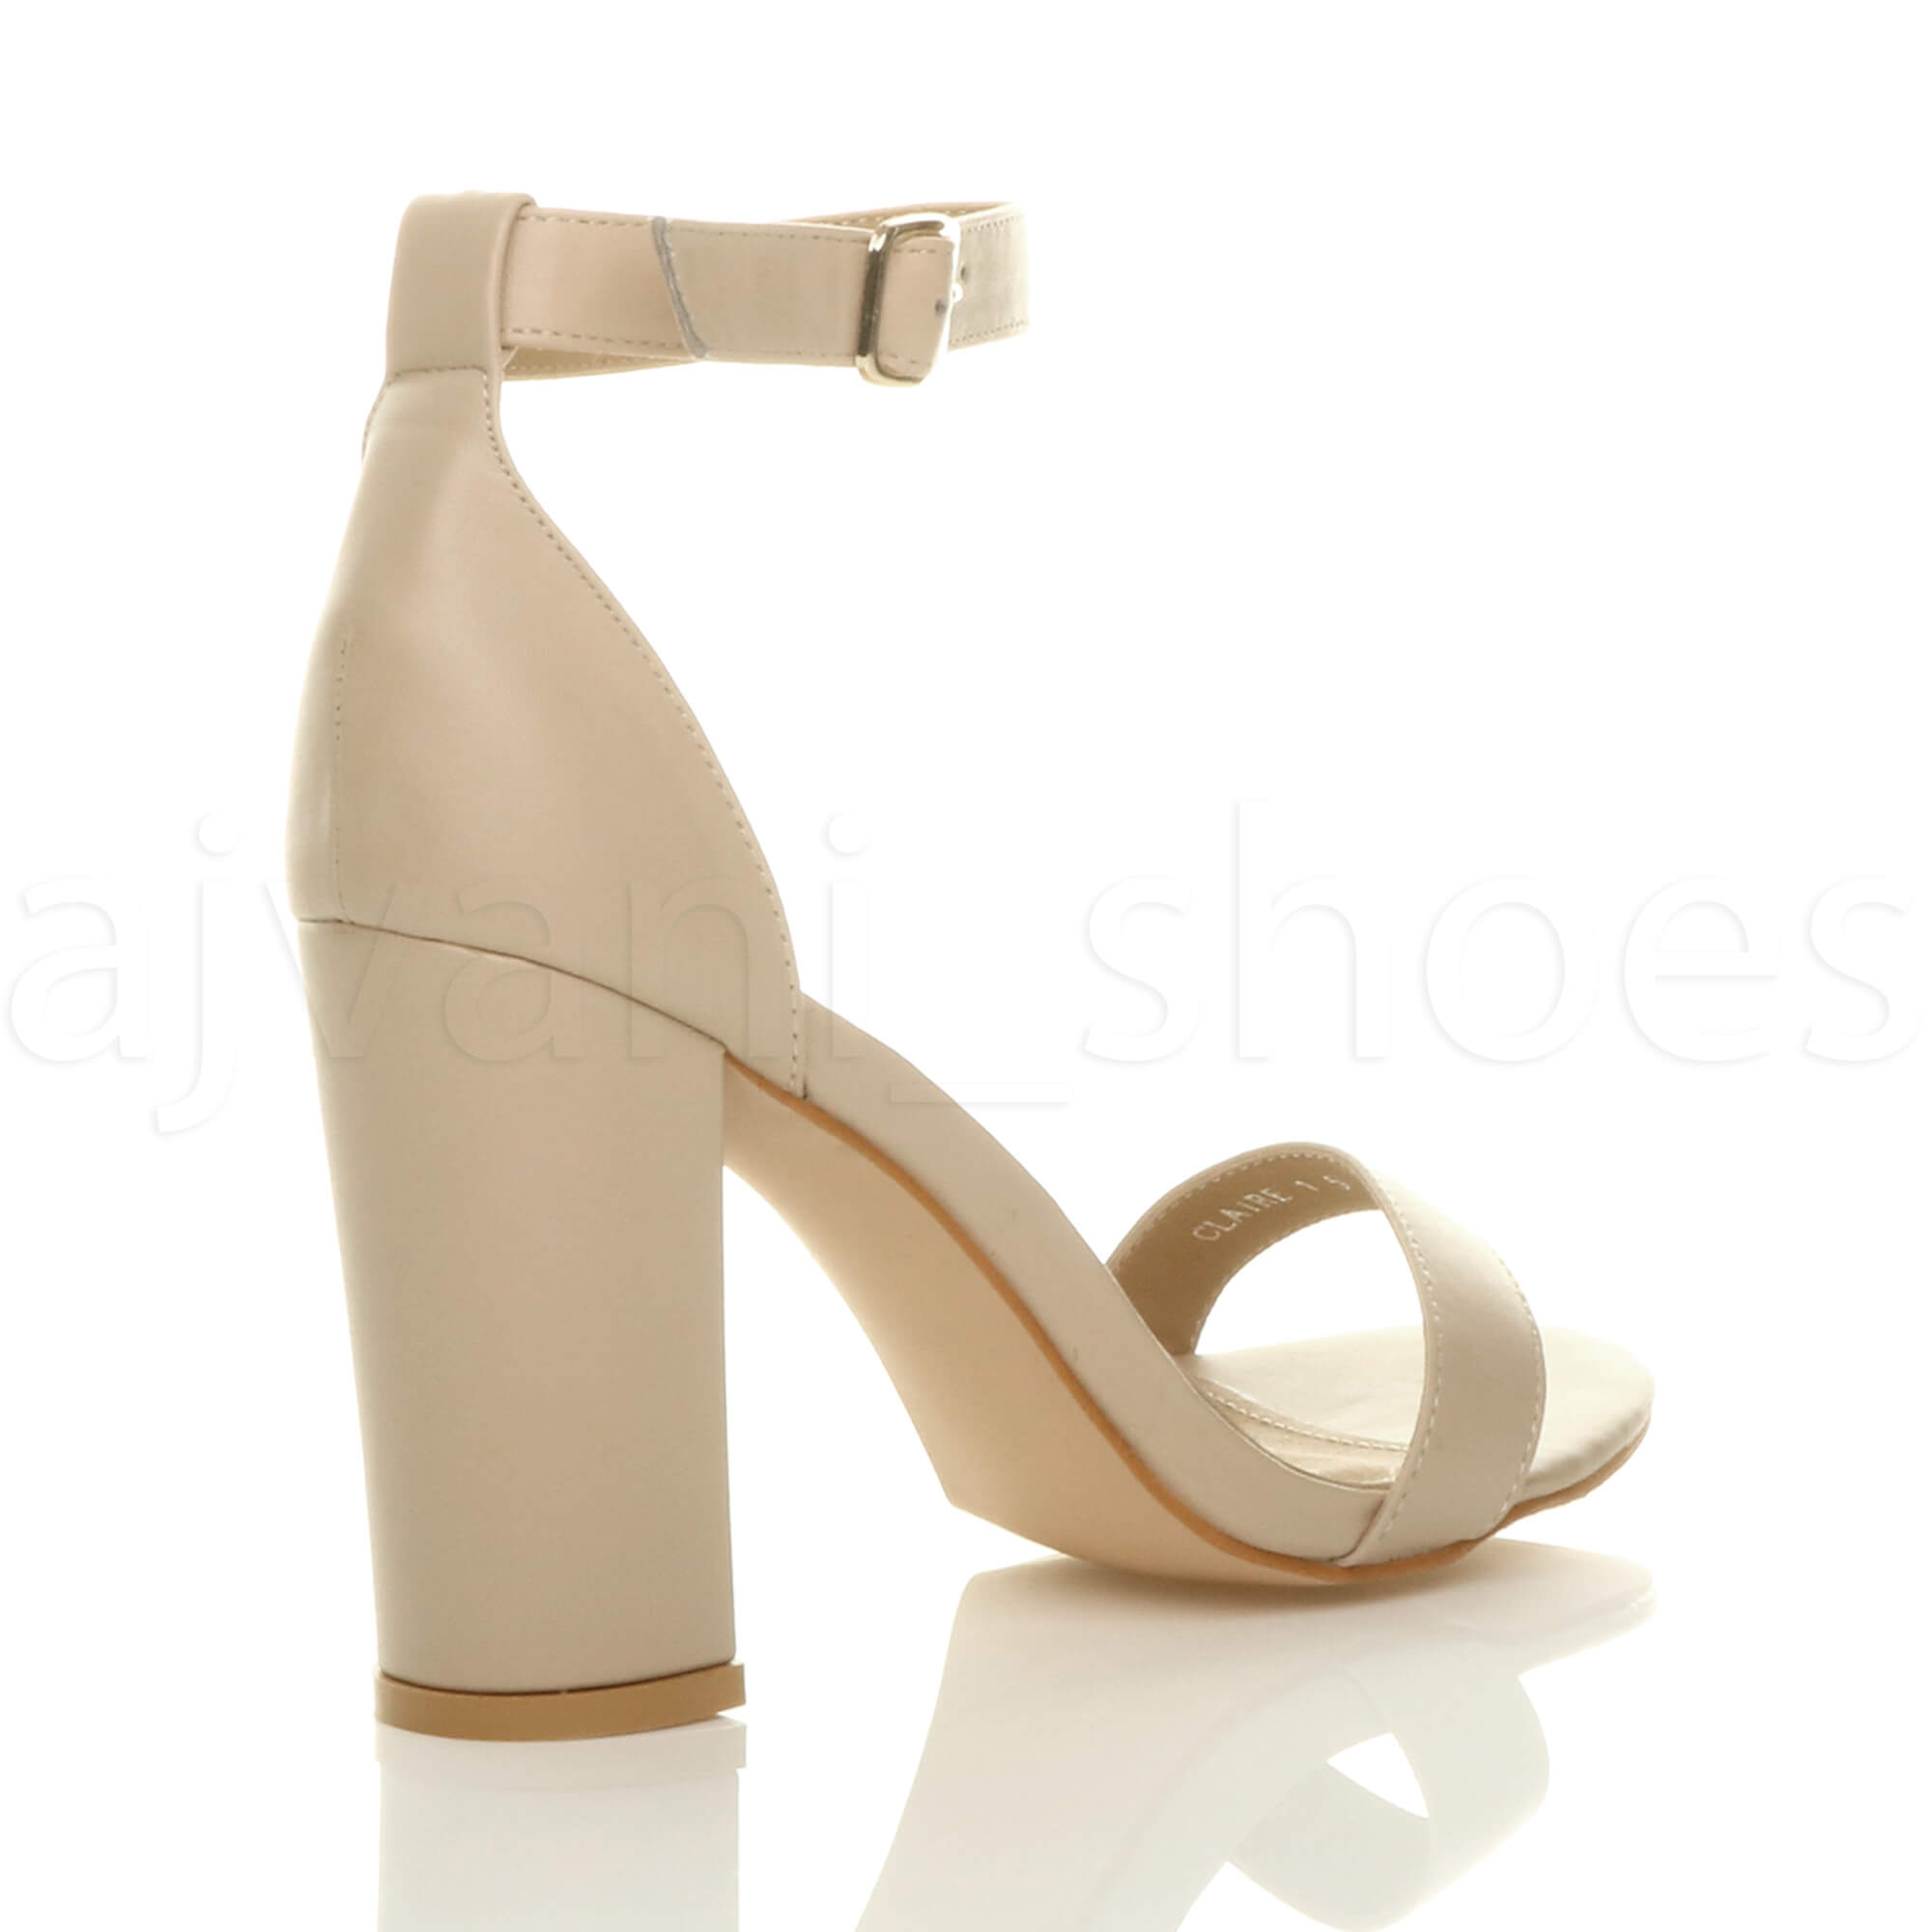 WOMENS-LADIES-BLOCK-HIGH-HEEL-ANKLE-STRAP-PEEP-TOE-STRAPPY-SANDALS-SHOES-SIZE thumbnail 98